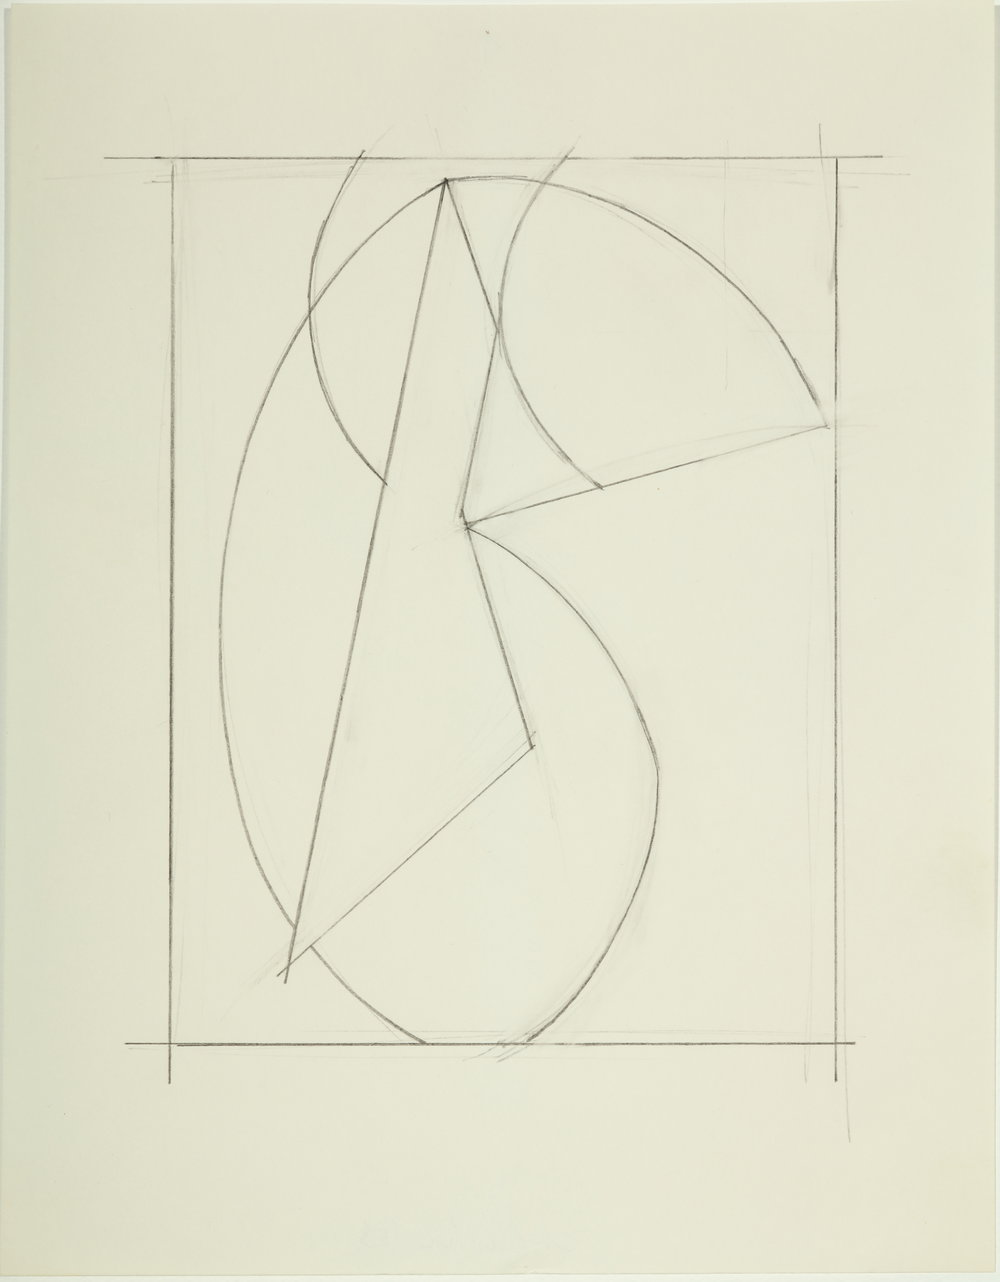 Untitled,  1983         Pencil on paper 11H x 8.5W inches unframed